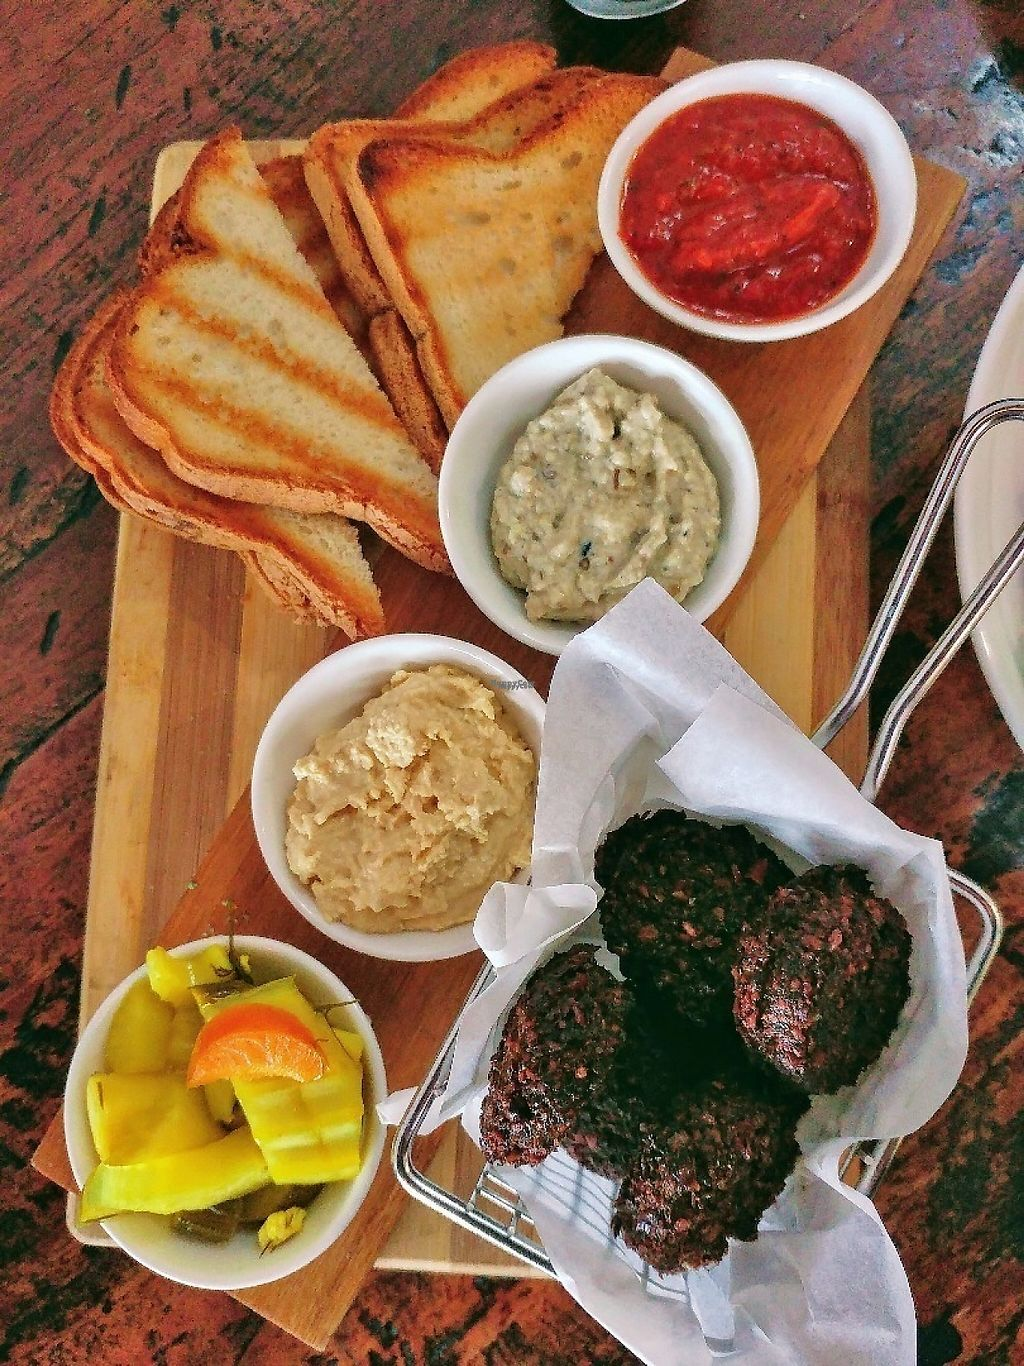 """Photo of CLOSED: Wholistic Foods  by <a href=""""/members/profile/verbosity"""">verbosity</a> <br/>Falafel board served with hummus, baba ganoush, tahini, assorted pickled vegetables + seeded loaf <br/> April 14, 2017  - <a href='/contact/abuse/image/90009/247736'>Report</a>"""